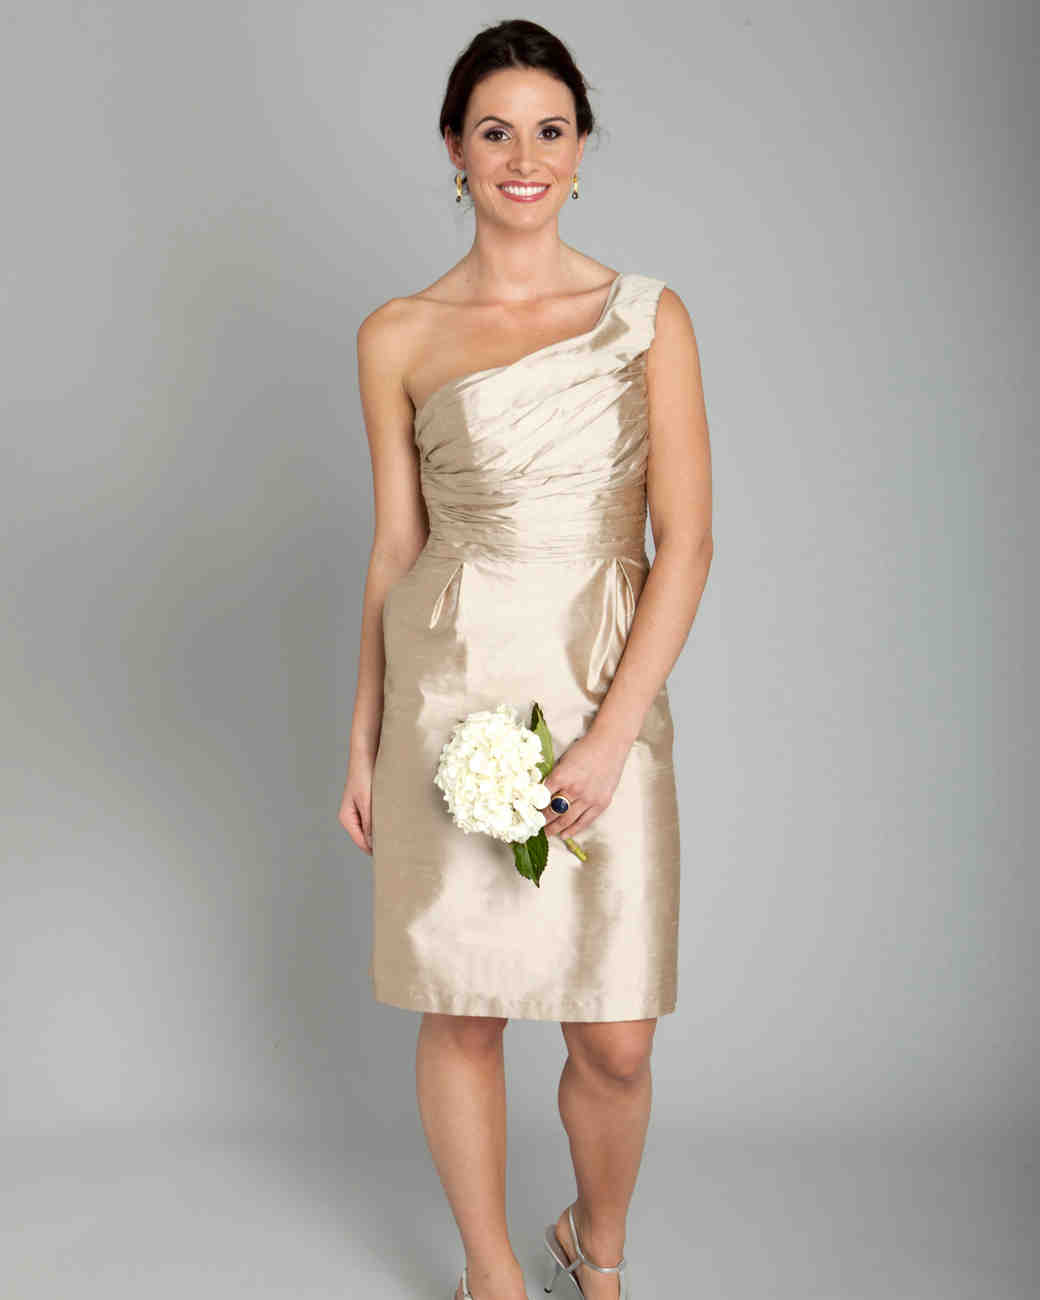 Champagne Colored Bridesmaid Dresses | Champagne Bridesmaid Dresses Martha Stewart Weddings